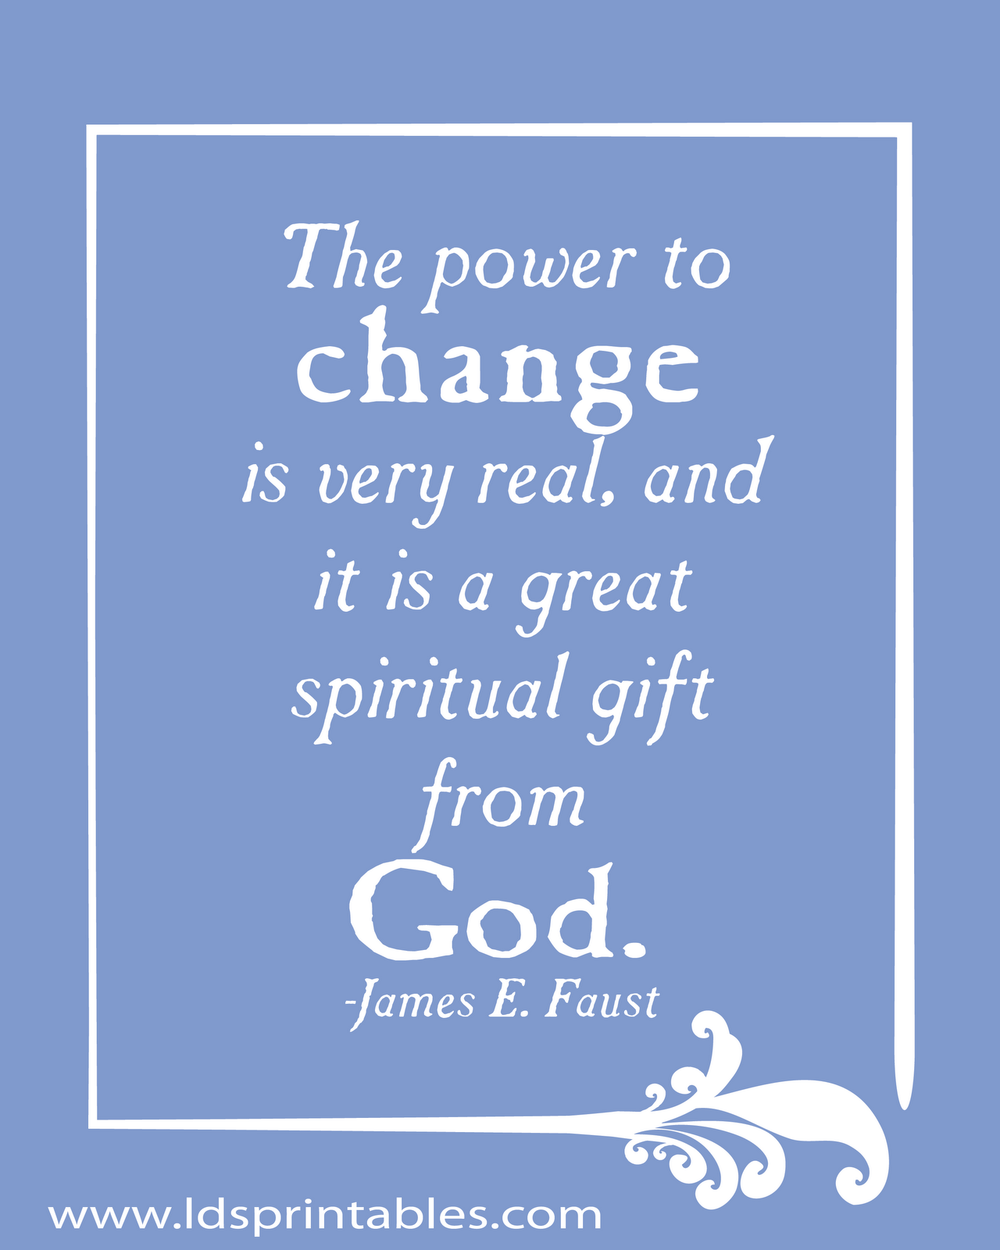 The power to change is real and is a gift from God